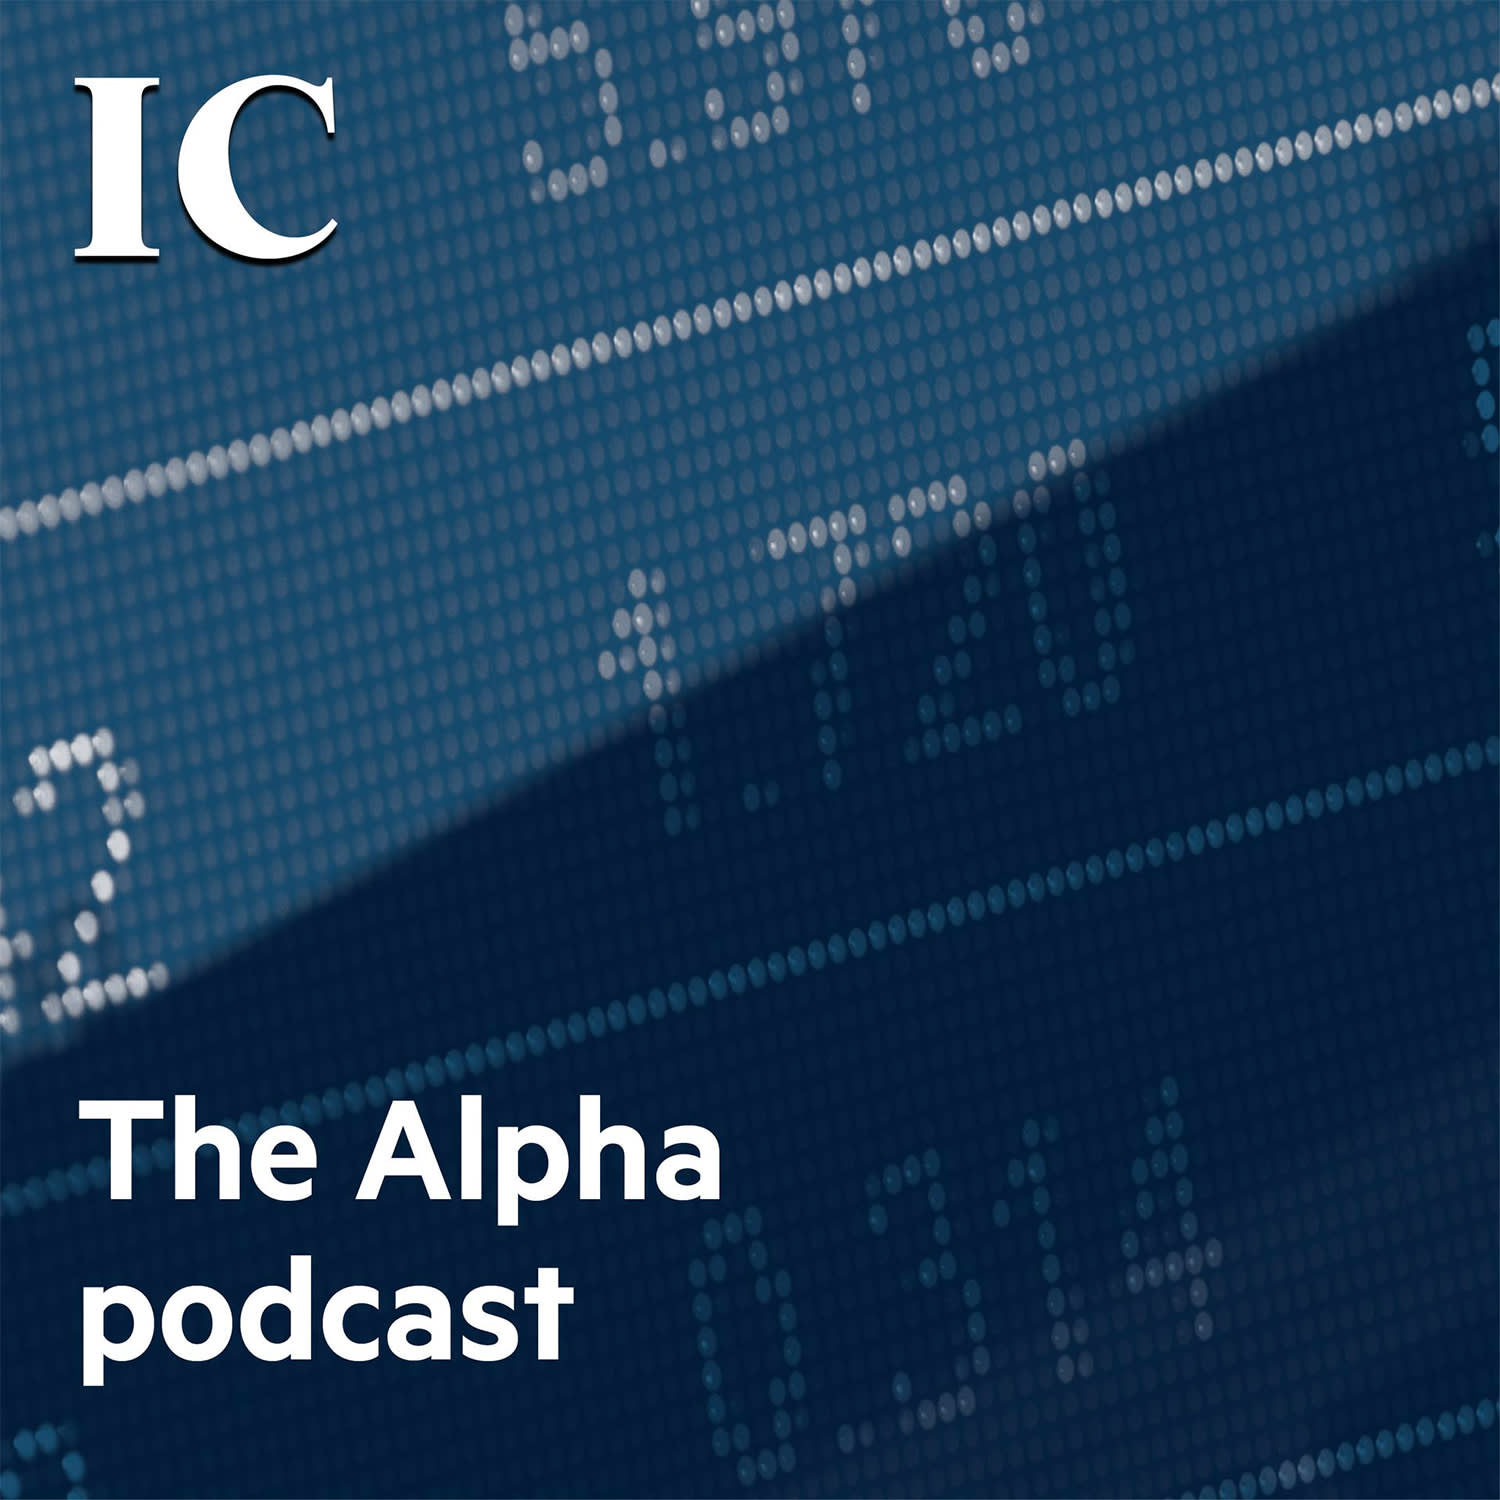 The Alpha Podcast: Tech, takeovers and the trouble with momentum